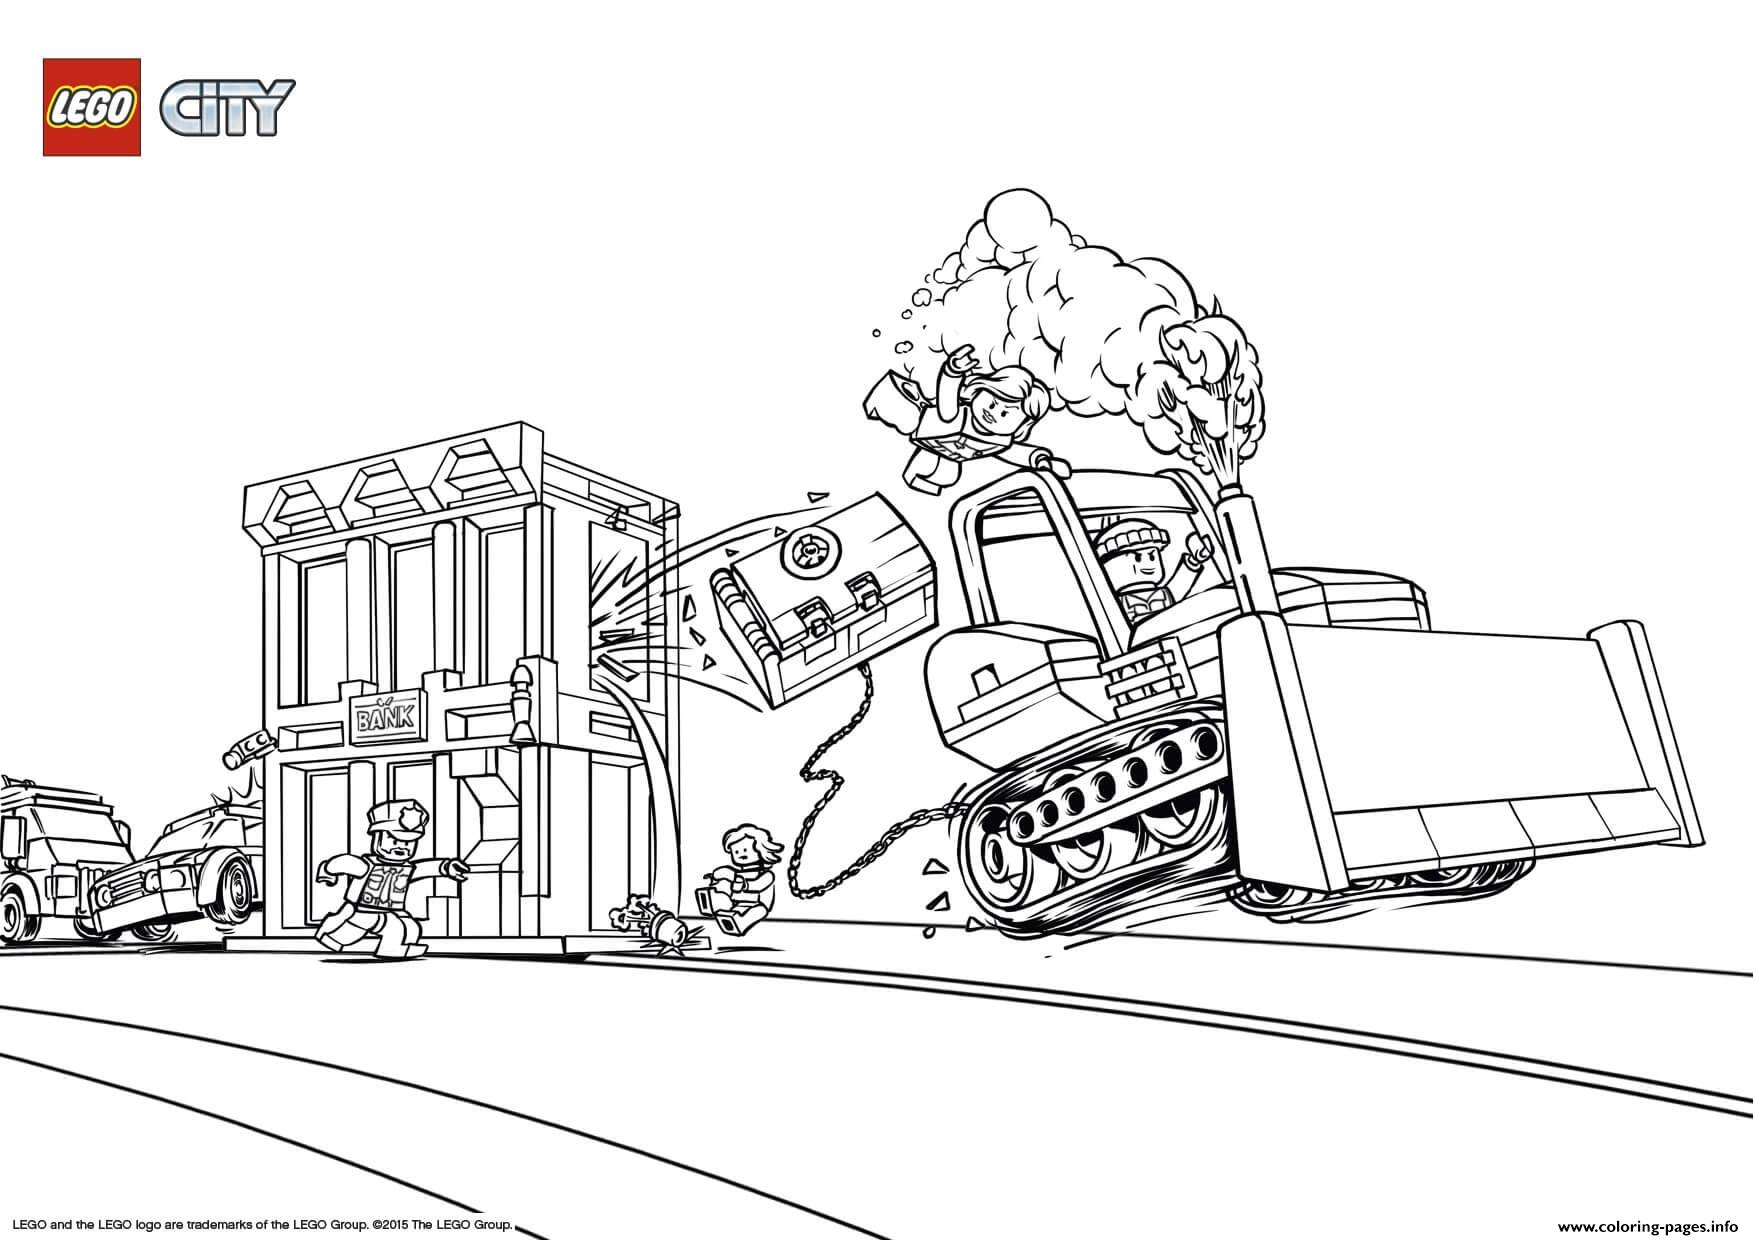 Lego City Catch The Crooks coloring pages